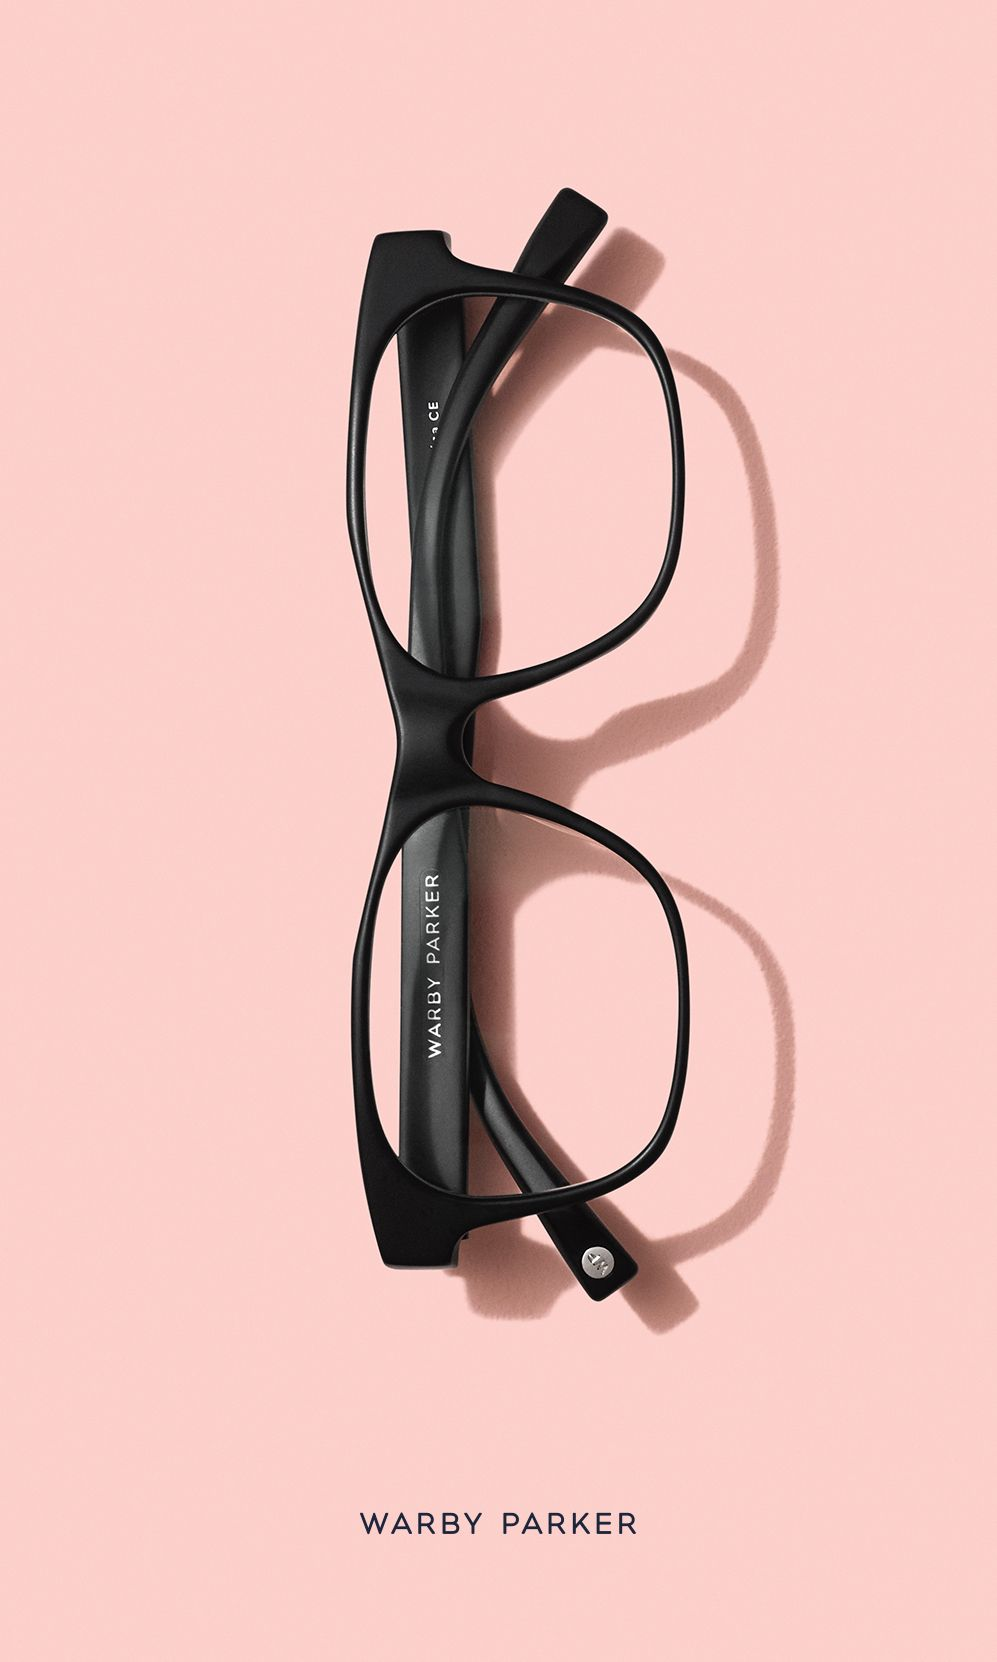 c1b71a1a116 Feast your eyes on the newest of the new  our just-released eyeglasses. Get  started with our free Home Try-On program and find your perfect pair today!